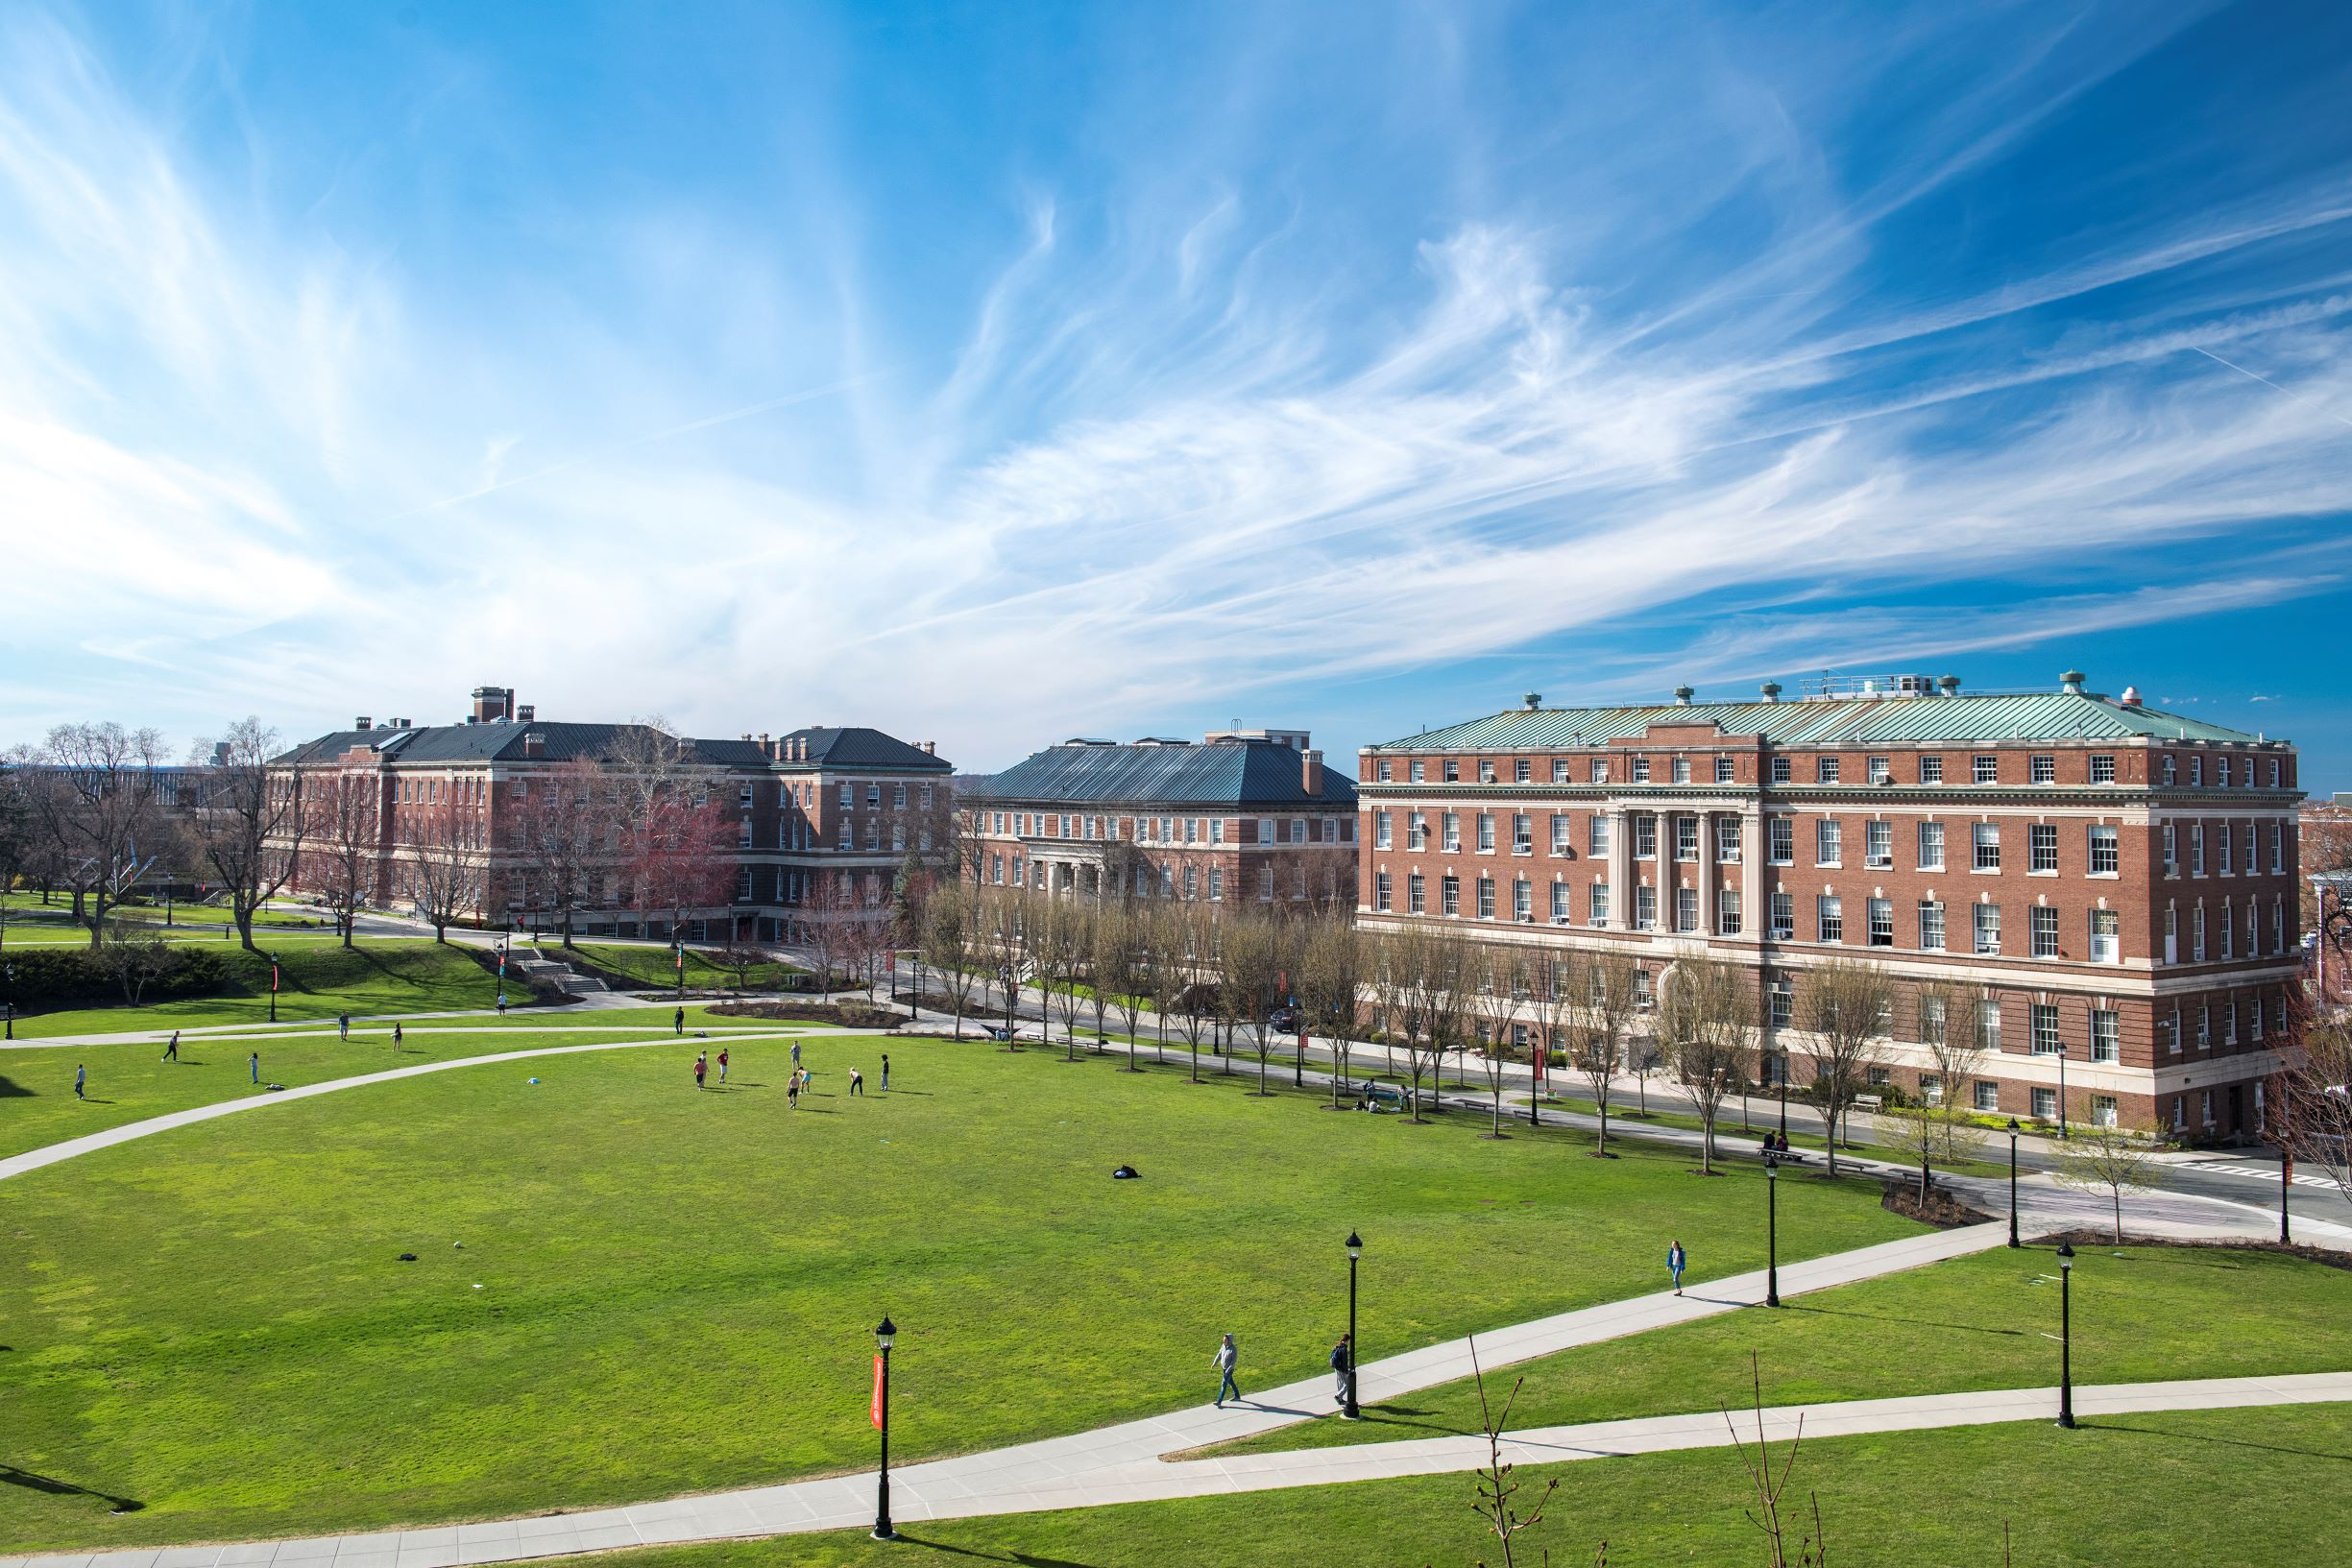 Rensselaer Polytechnic Institute Ranks High In Best Programs intended for Rensselaer Polytechnic Institute Academic Calendar 2020